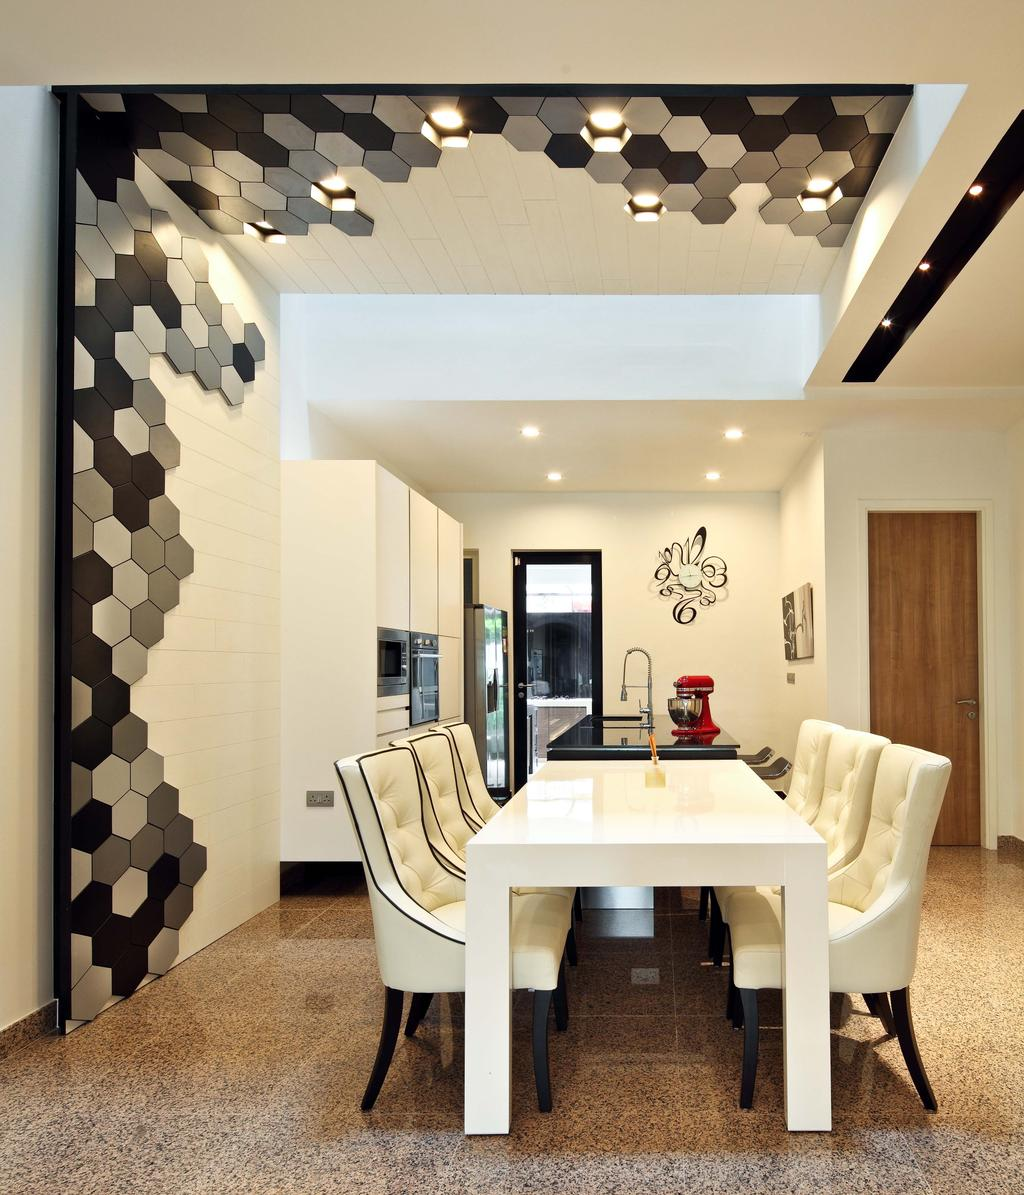 Contemporary, Landed, Dining Room, Mimosa Drive, Interior Designer, The Scientist, Modern, Hexagonal Tiles, Black And White, Monochrome, White Dining Table, White Table, White Chairs, Recessed Lighting, Indoors, Interior Design, Room